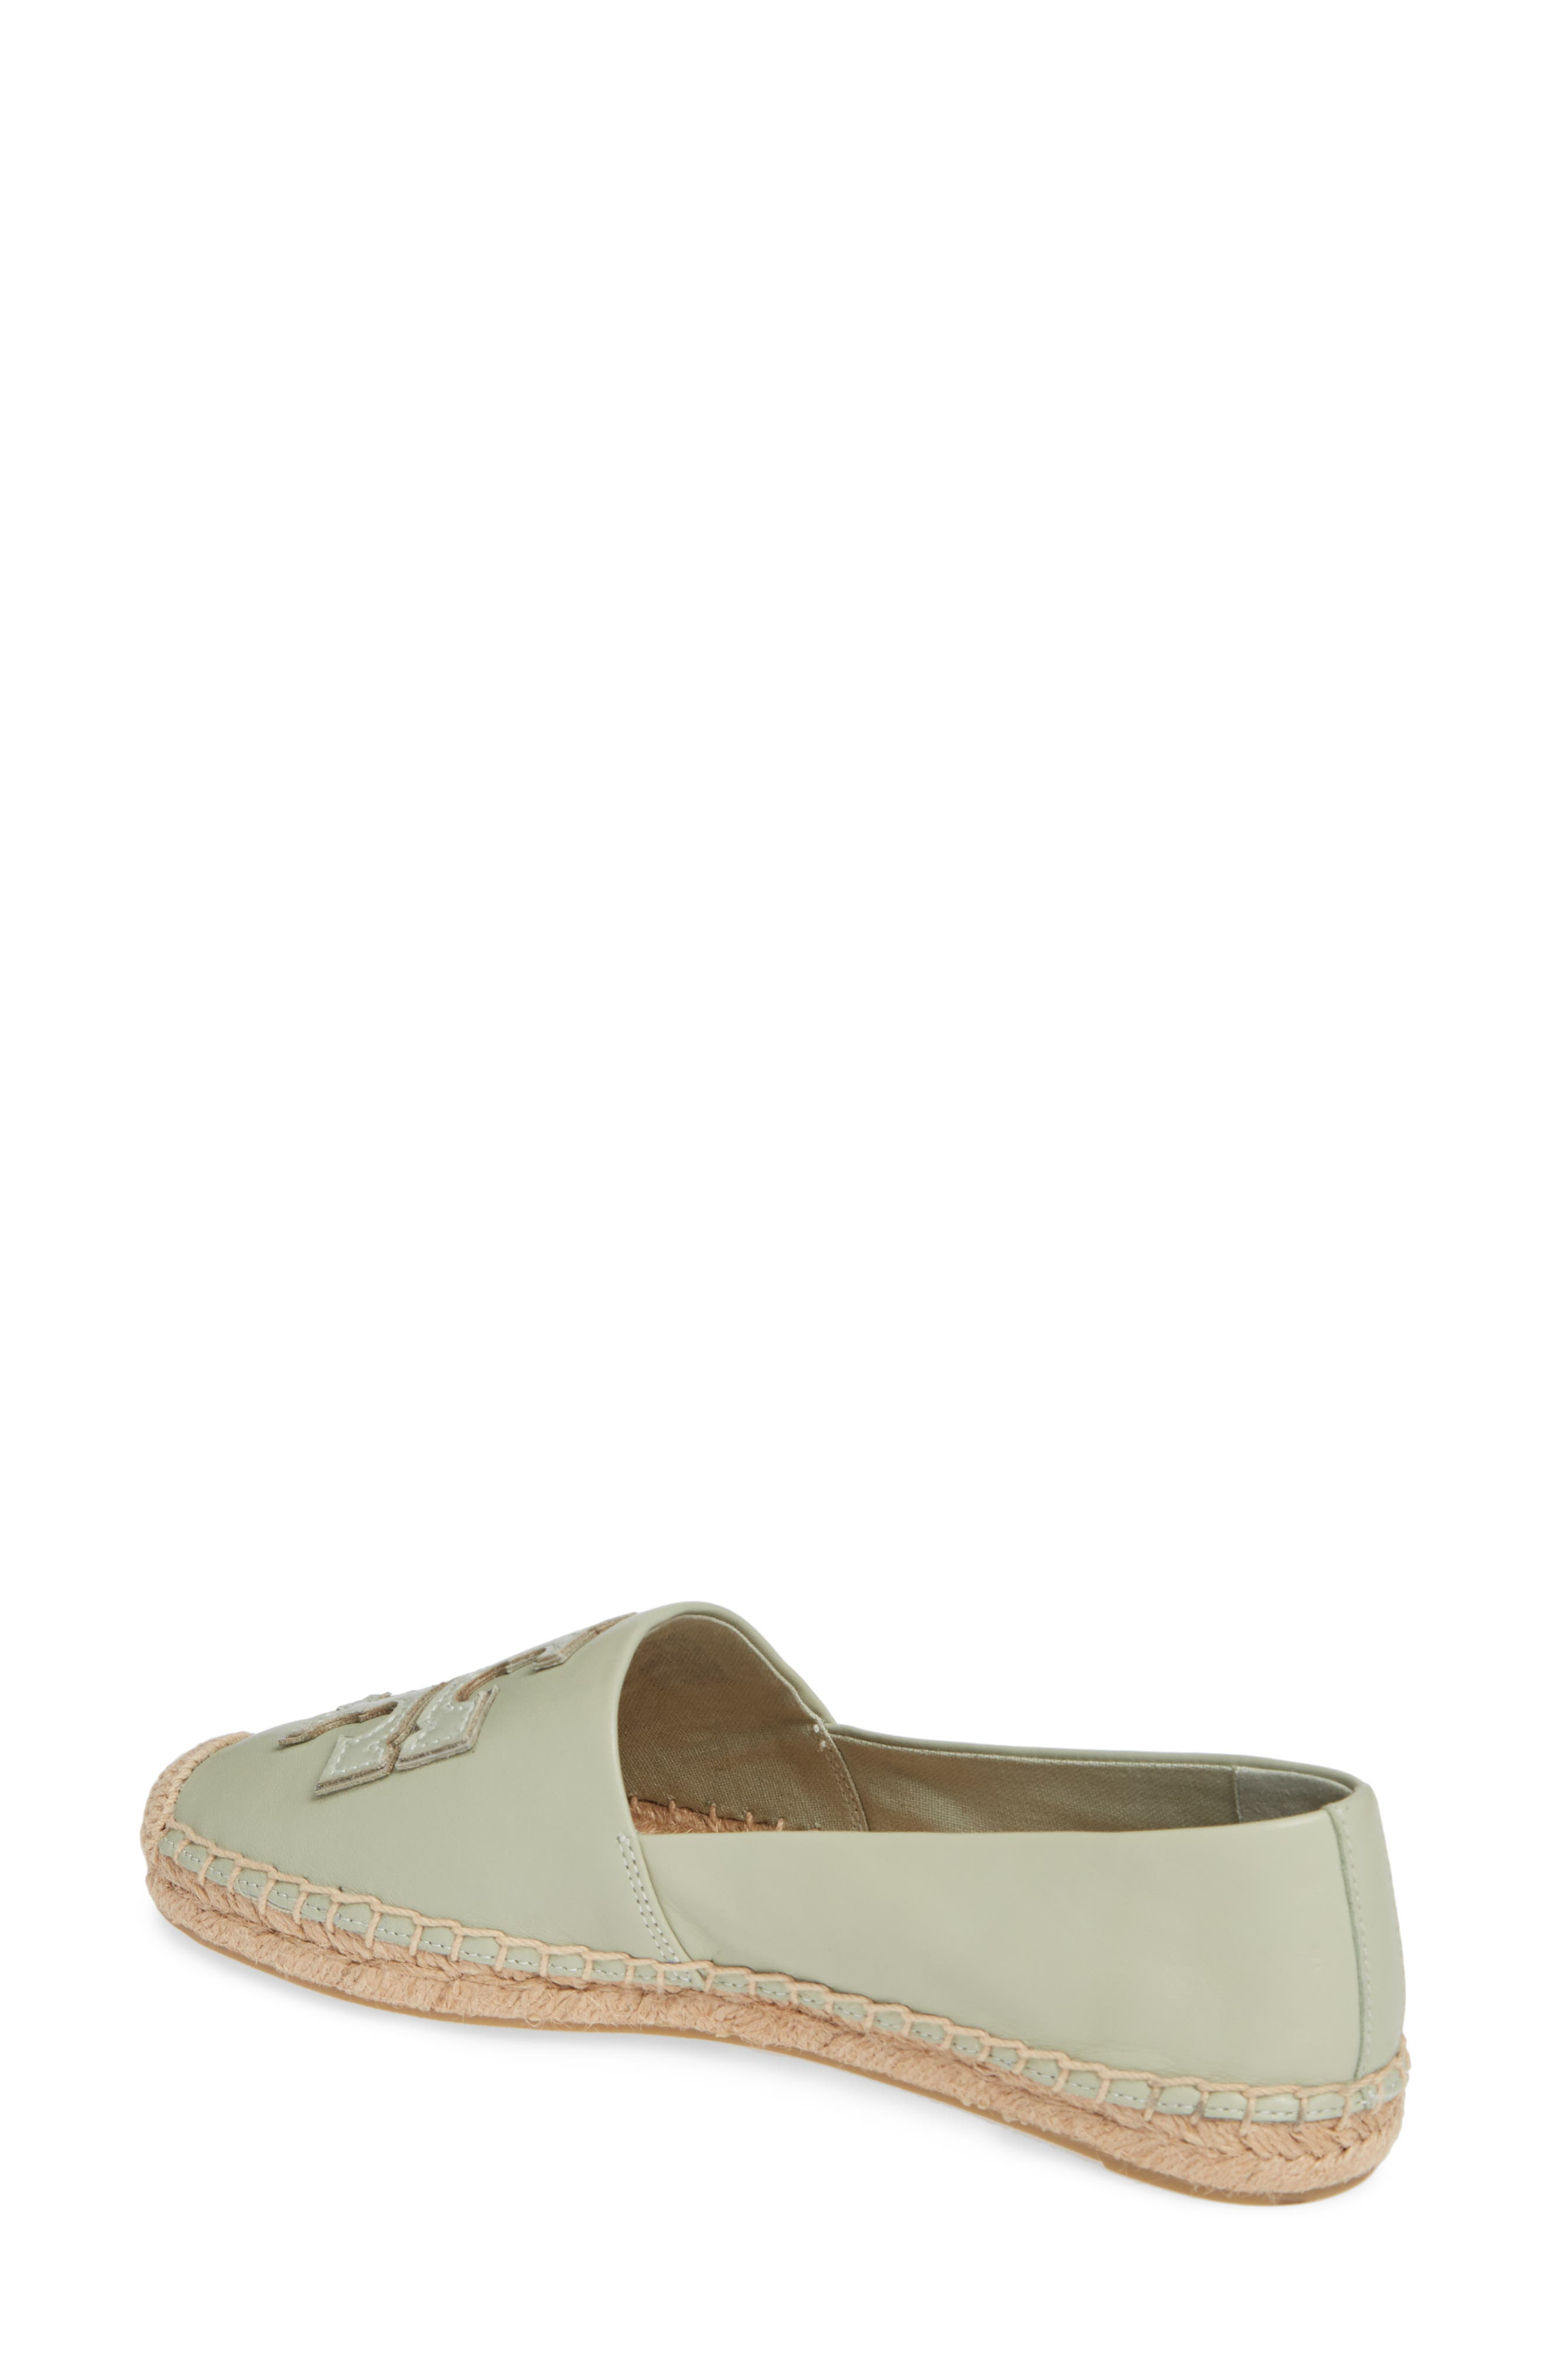 TORY BURCH, Ines Espadrille, Alternate thumbnail 2, color, GARDEN SAGE / SILVER